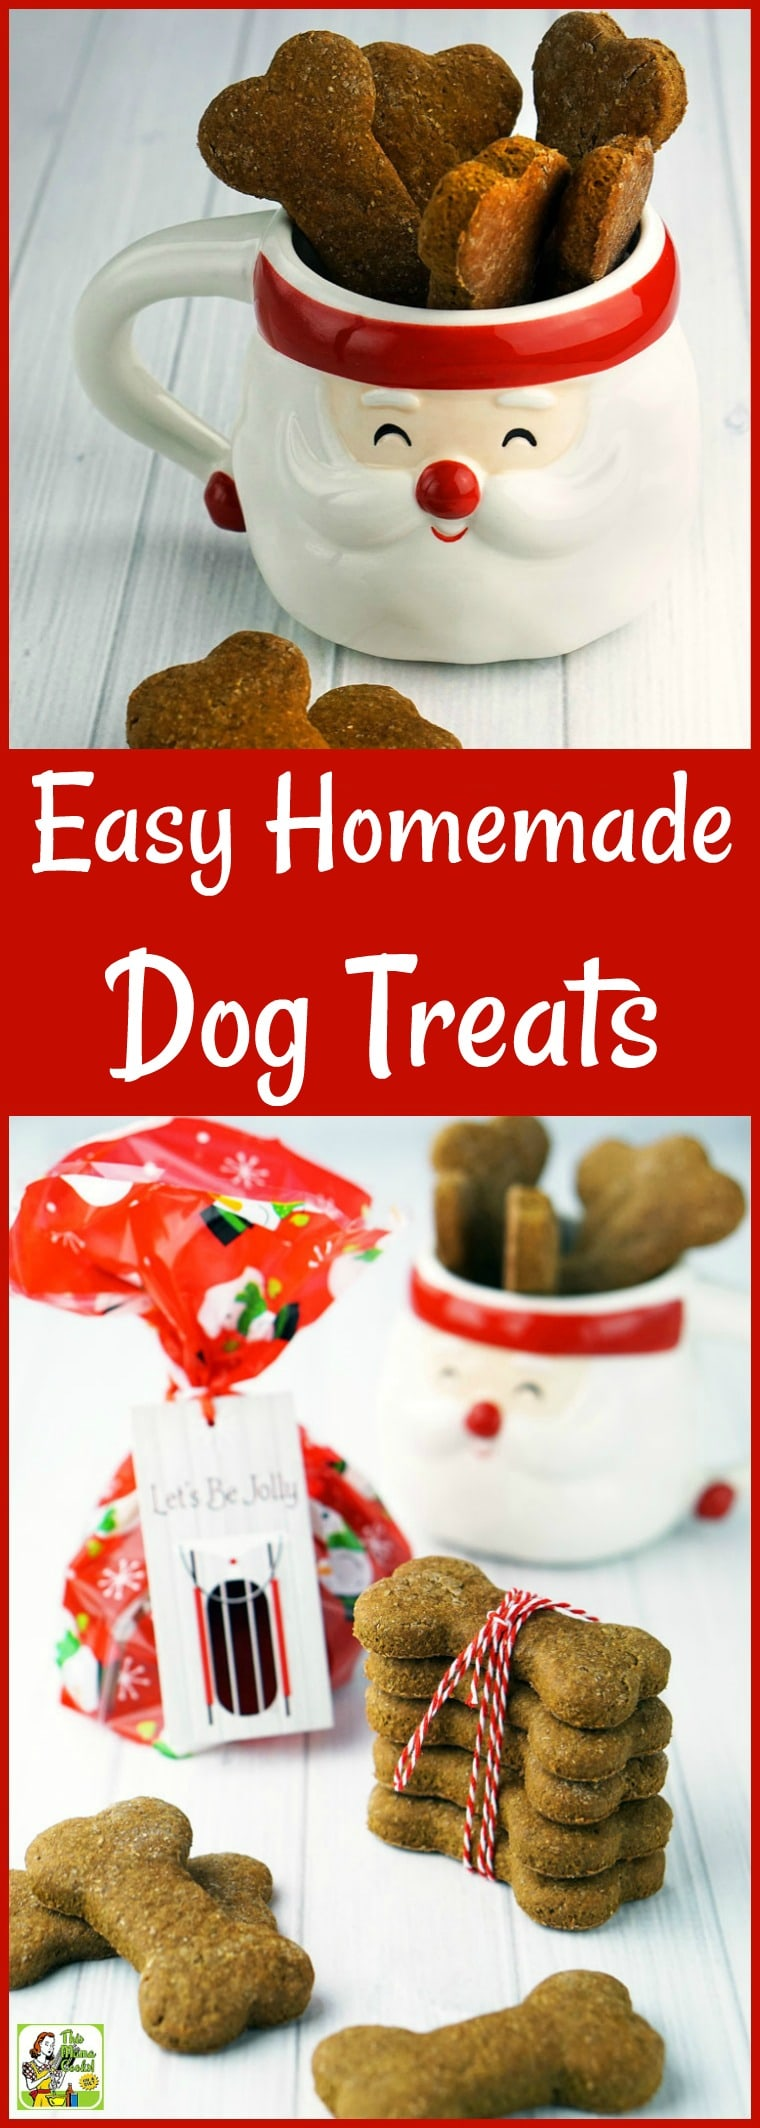 Looking for an easy homemade gift recipe for someone with a dog? Make a batch of this Easy Homemade Dog Treats recipe. #dogs #dogtreats #healthydogs #healthydogtreats #homemadedogtreats #homemadetreats #homemadegifts #homemadedogbiscuits #dogbiscuits #dogbiscuitsrecipes #dogtreatrecipes #glutenfree #doglovers #recipe #recipeoftheday